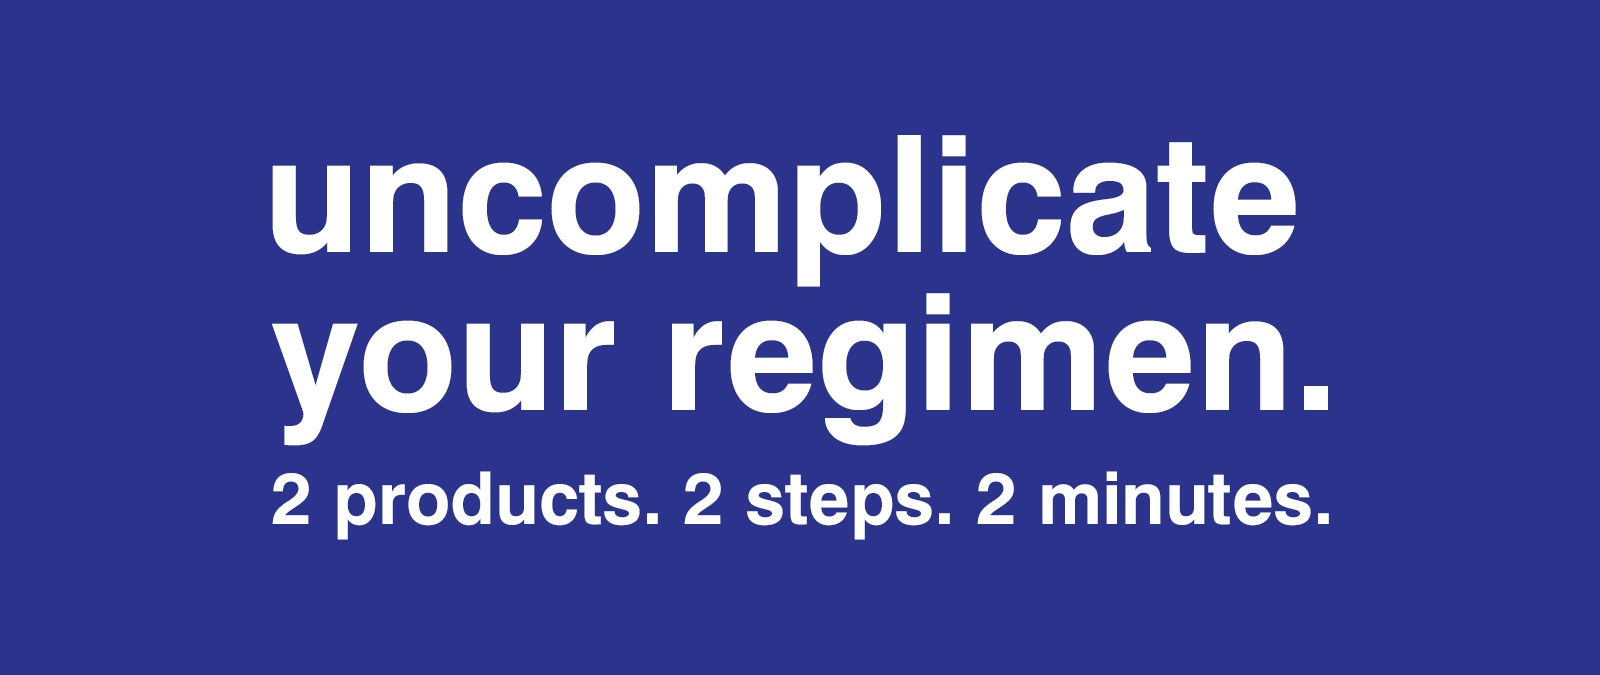 uncomplicate your regimen